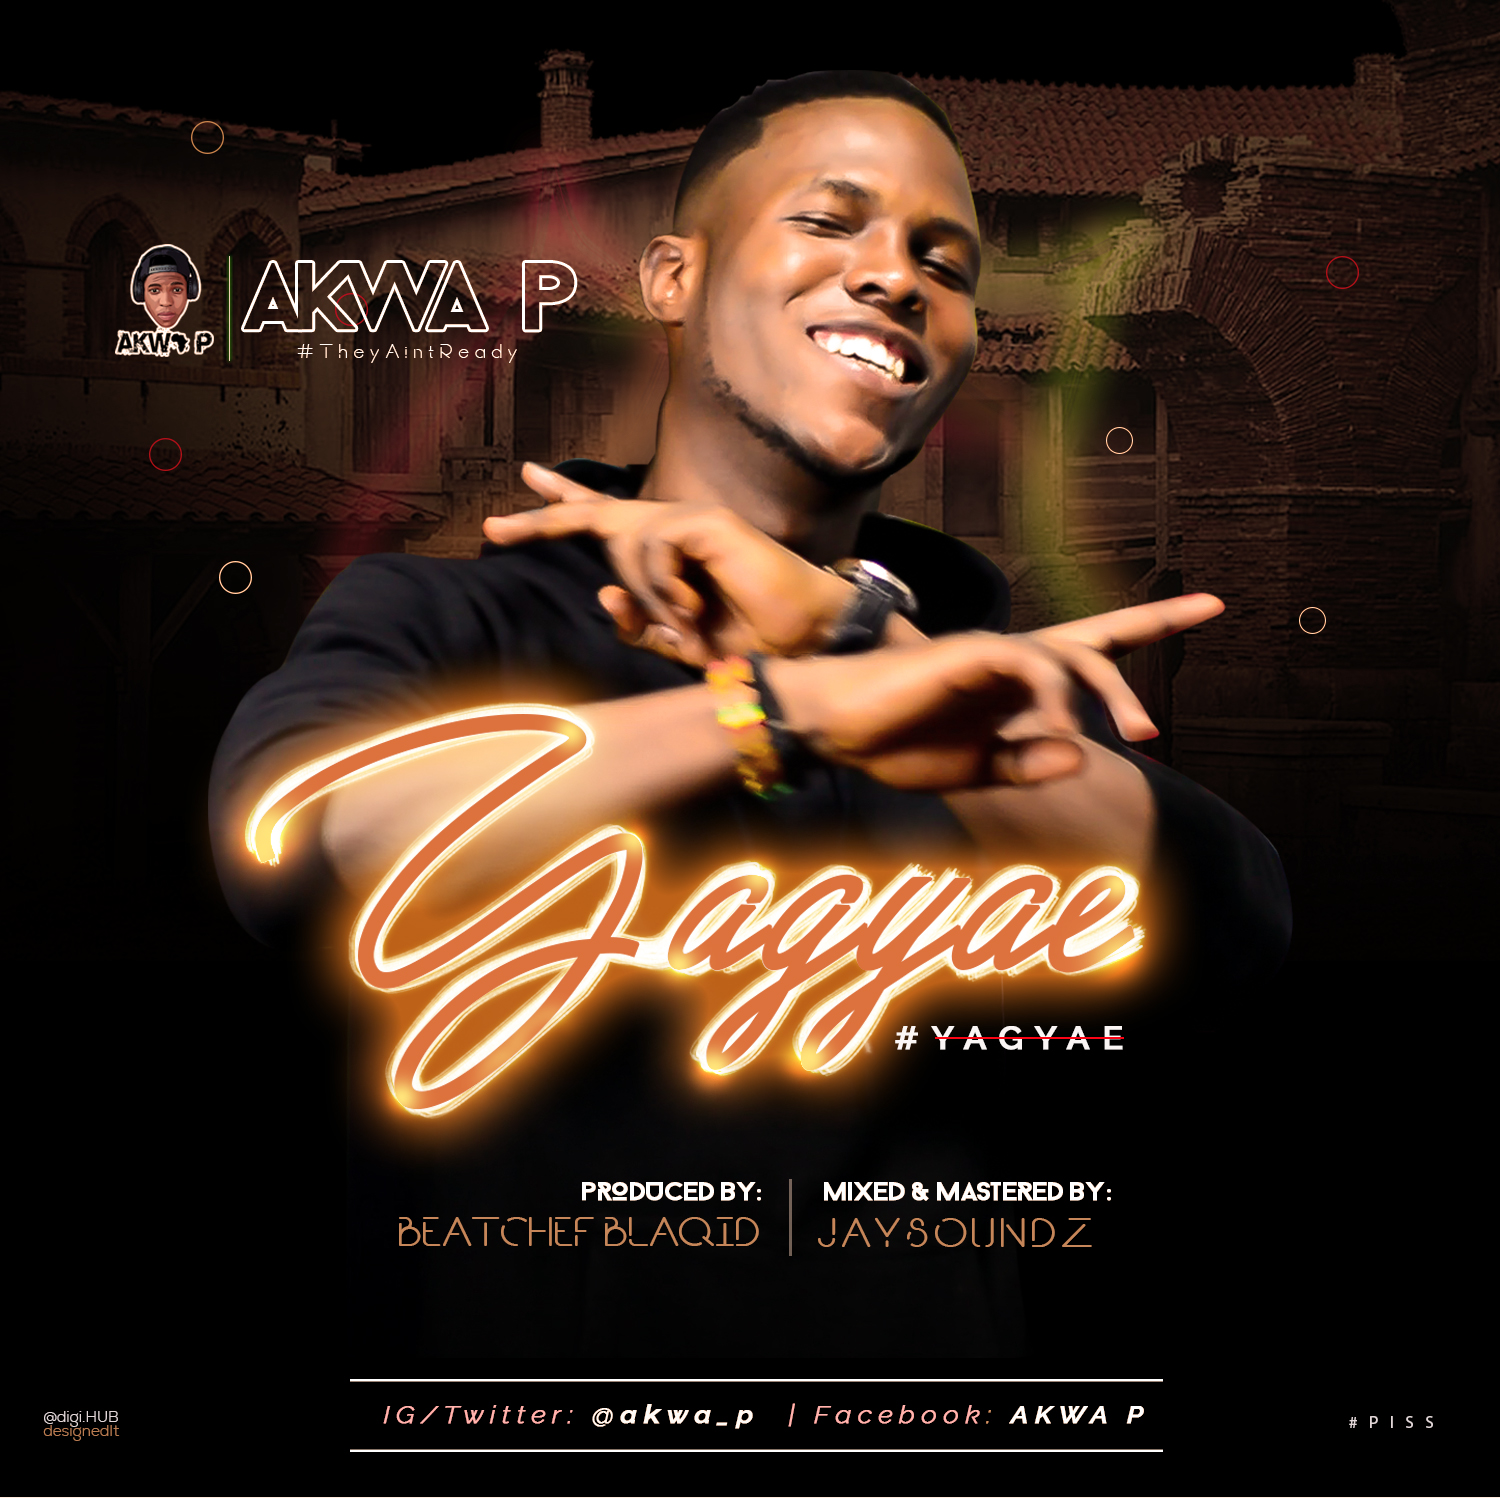 Akwa P – Yagyae (Prod. by BeatChef Blaqid & Mixed by Jay Soundz)